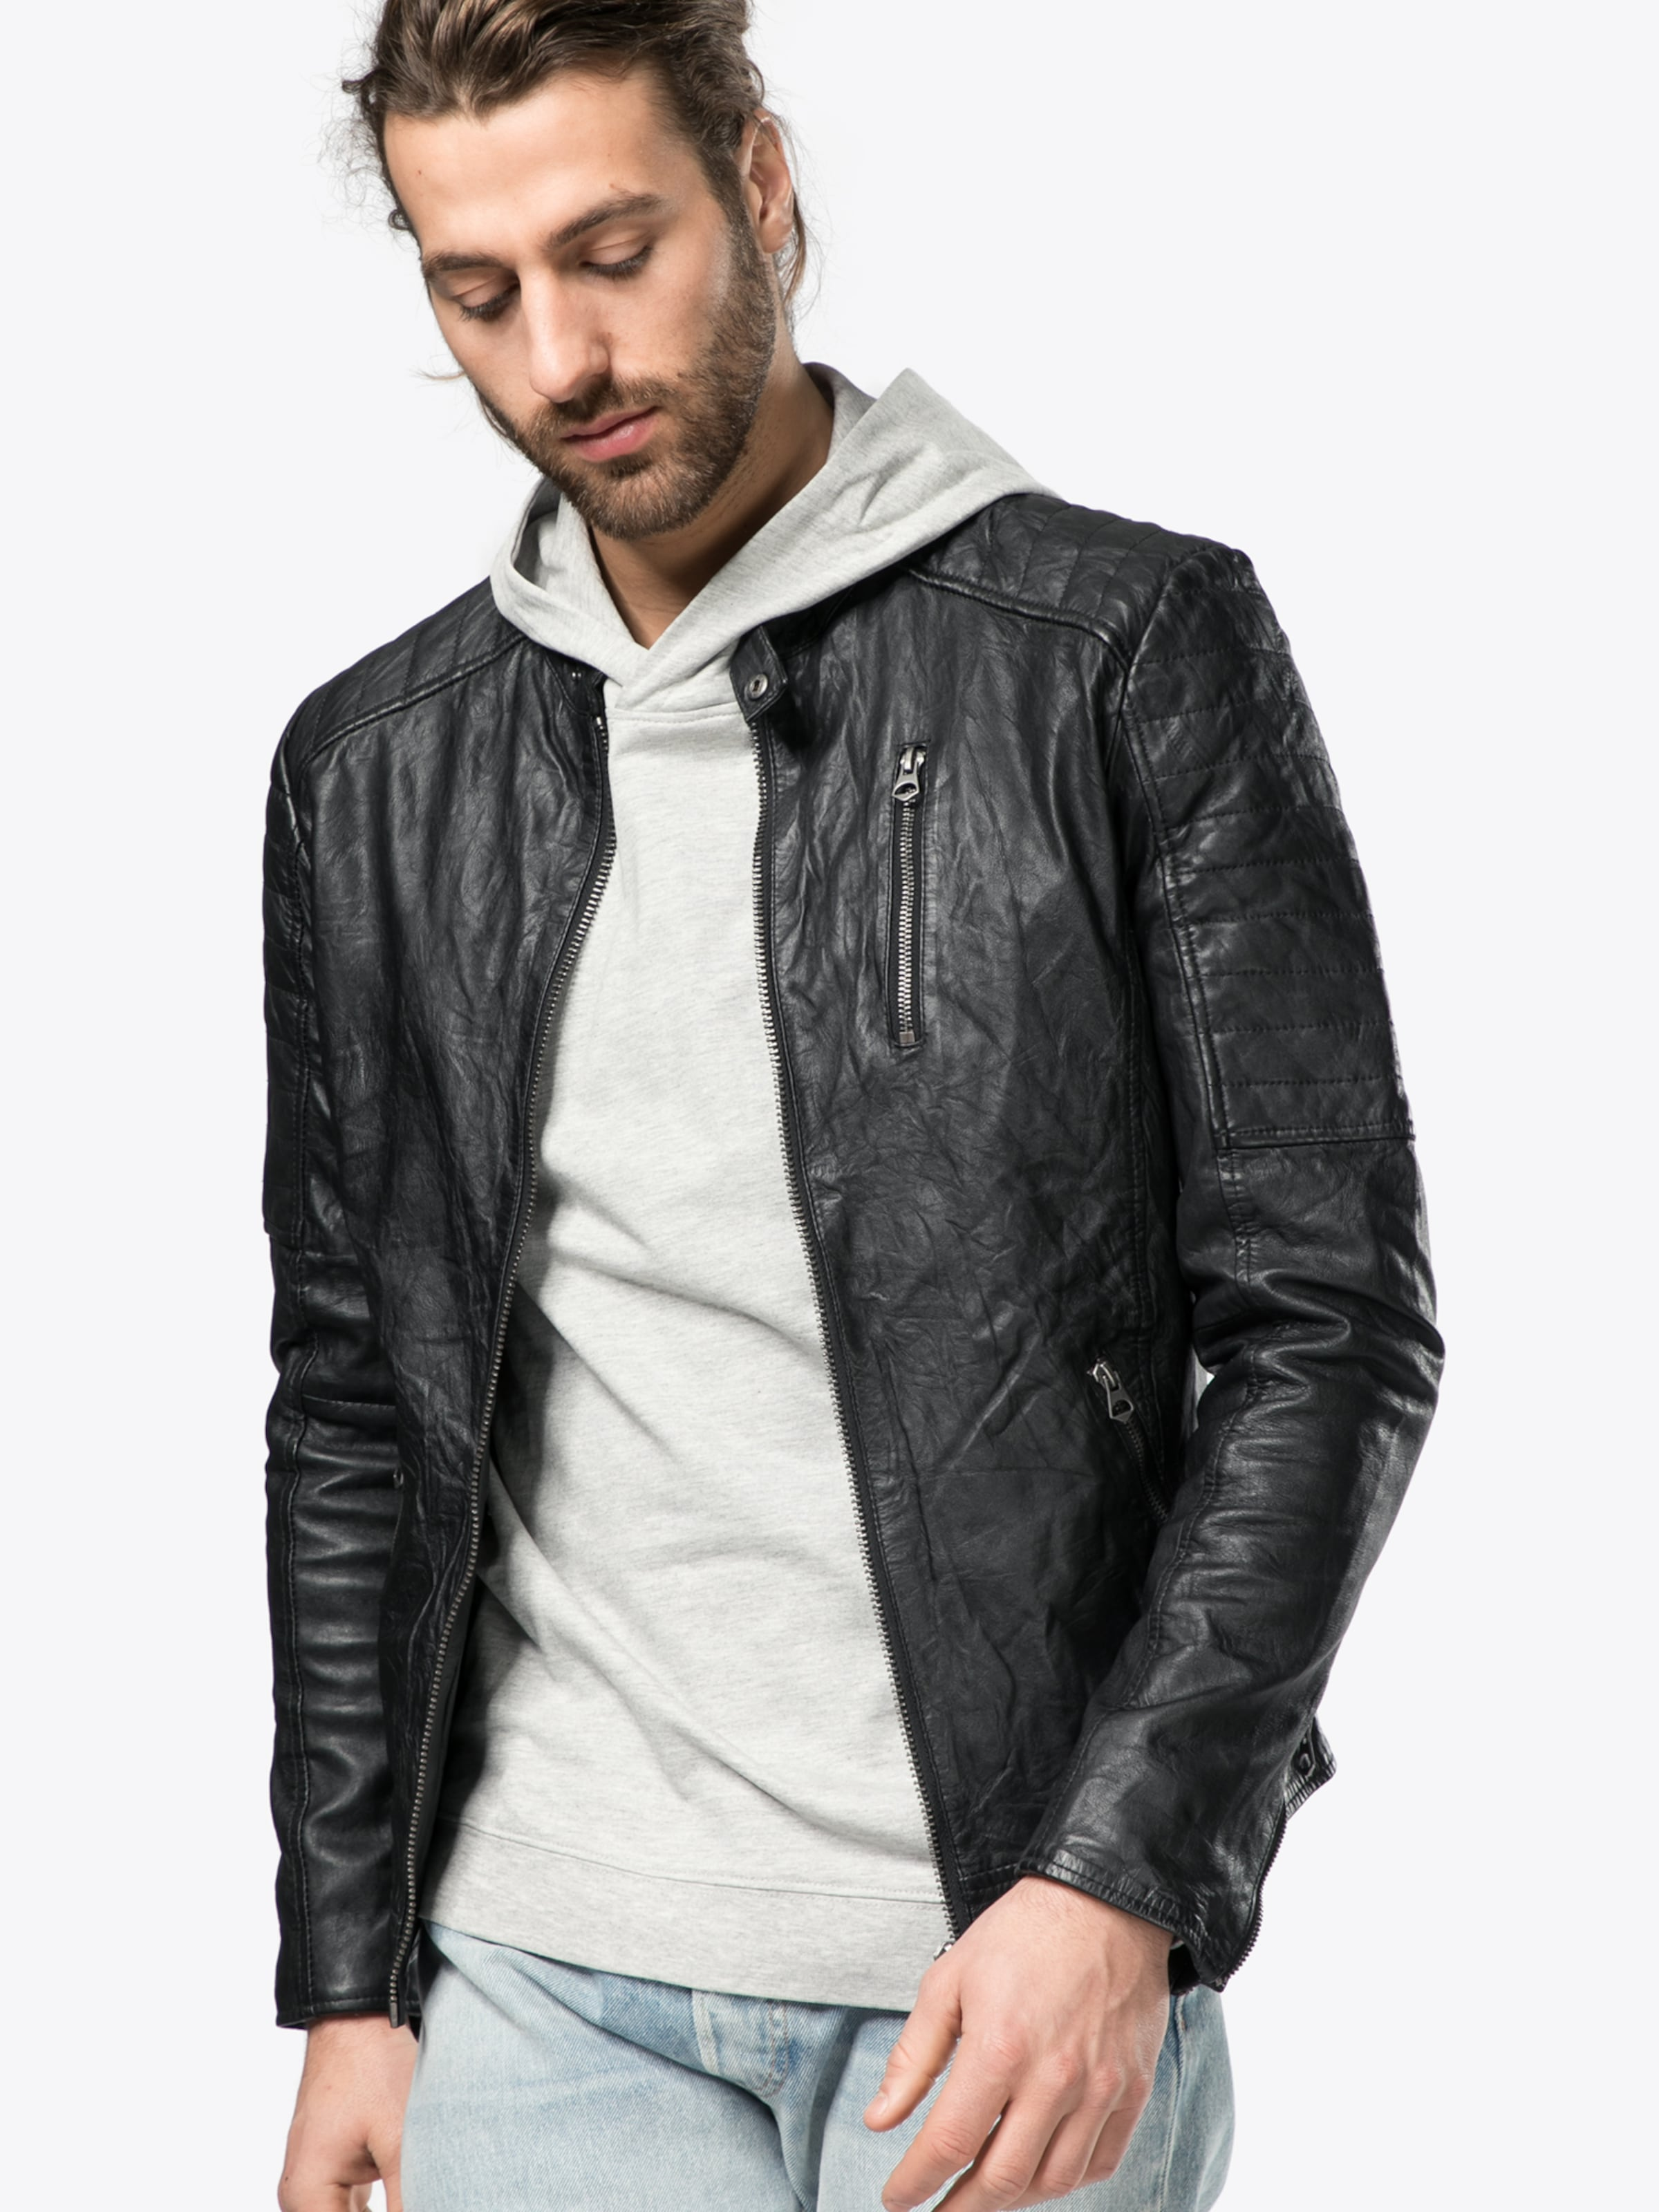 Jones Veste Jacket Leather saison Noos' En 'jjvrichard Jackamp; Mi Noir Lamb TlFK1cJ